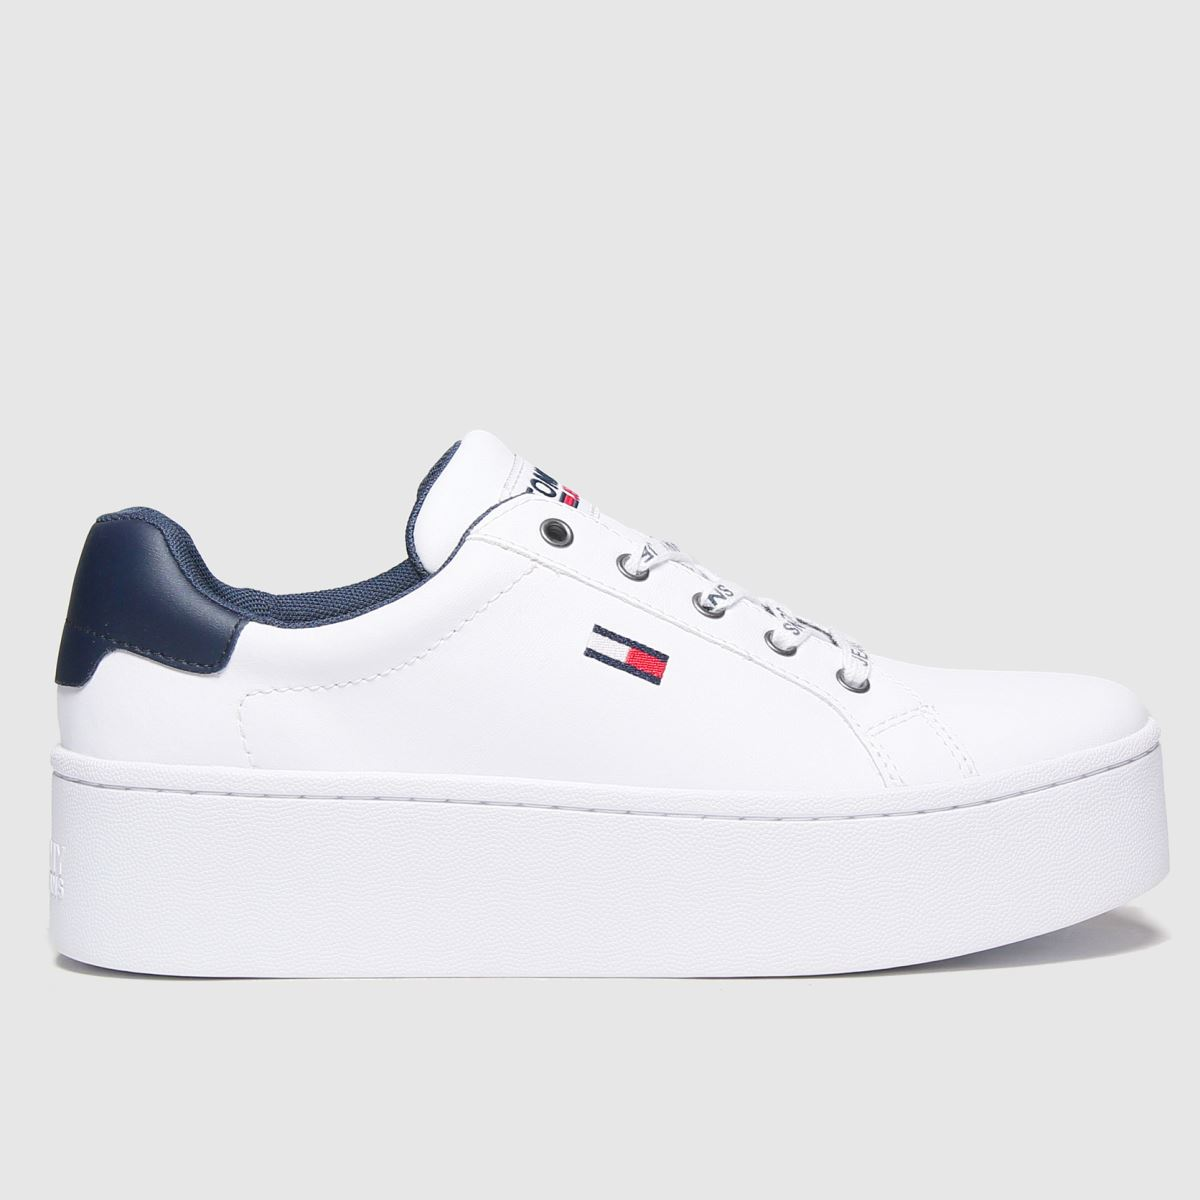 Tommy Hilfiger White Iconic Flatform Sneaker Trainers